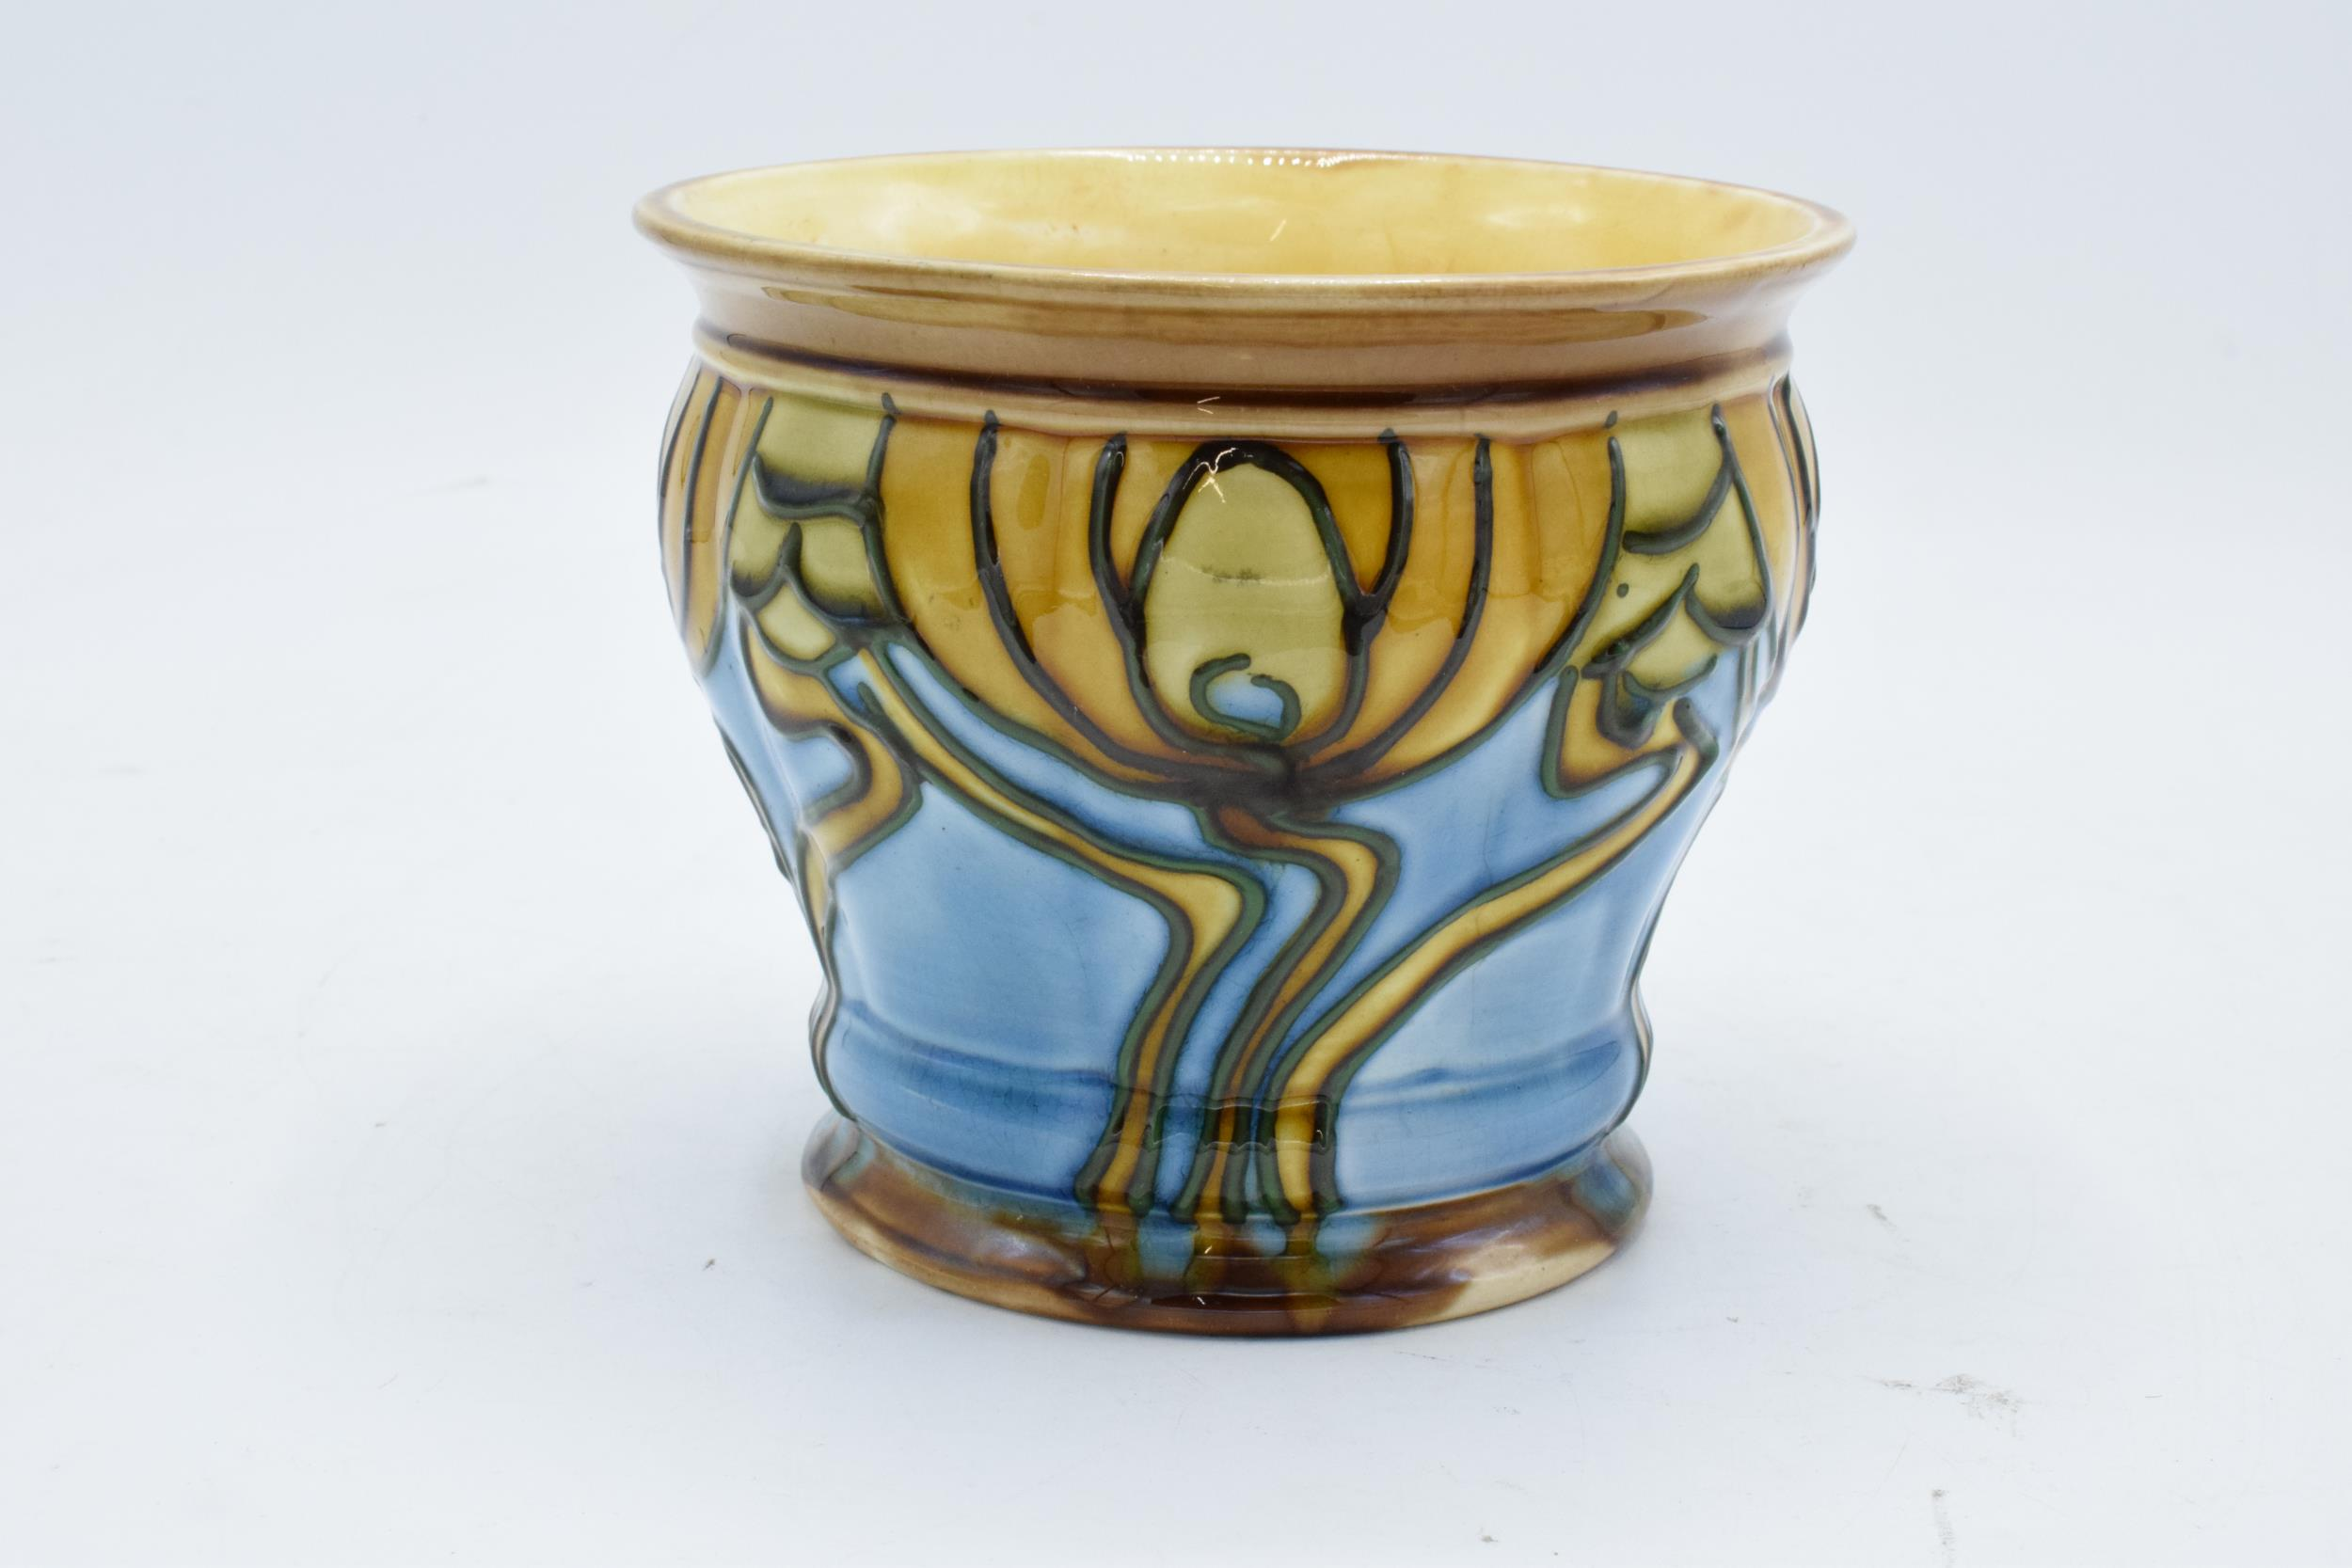 Minton Secessionist Jardinière with a stylised design 'No. 9'. 11cm tall. 12.5 diameter. Condition - Image 2 of 6